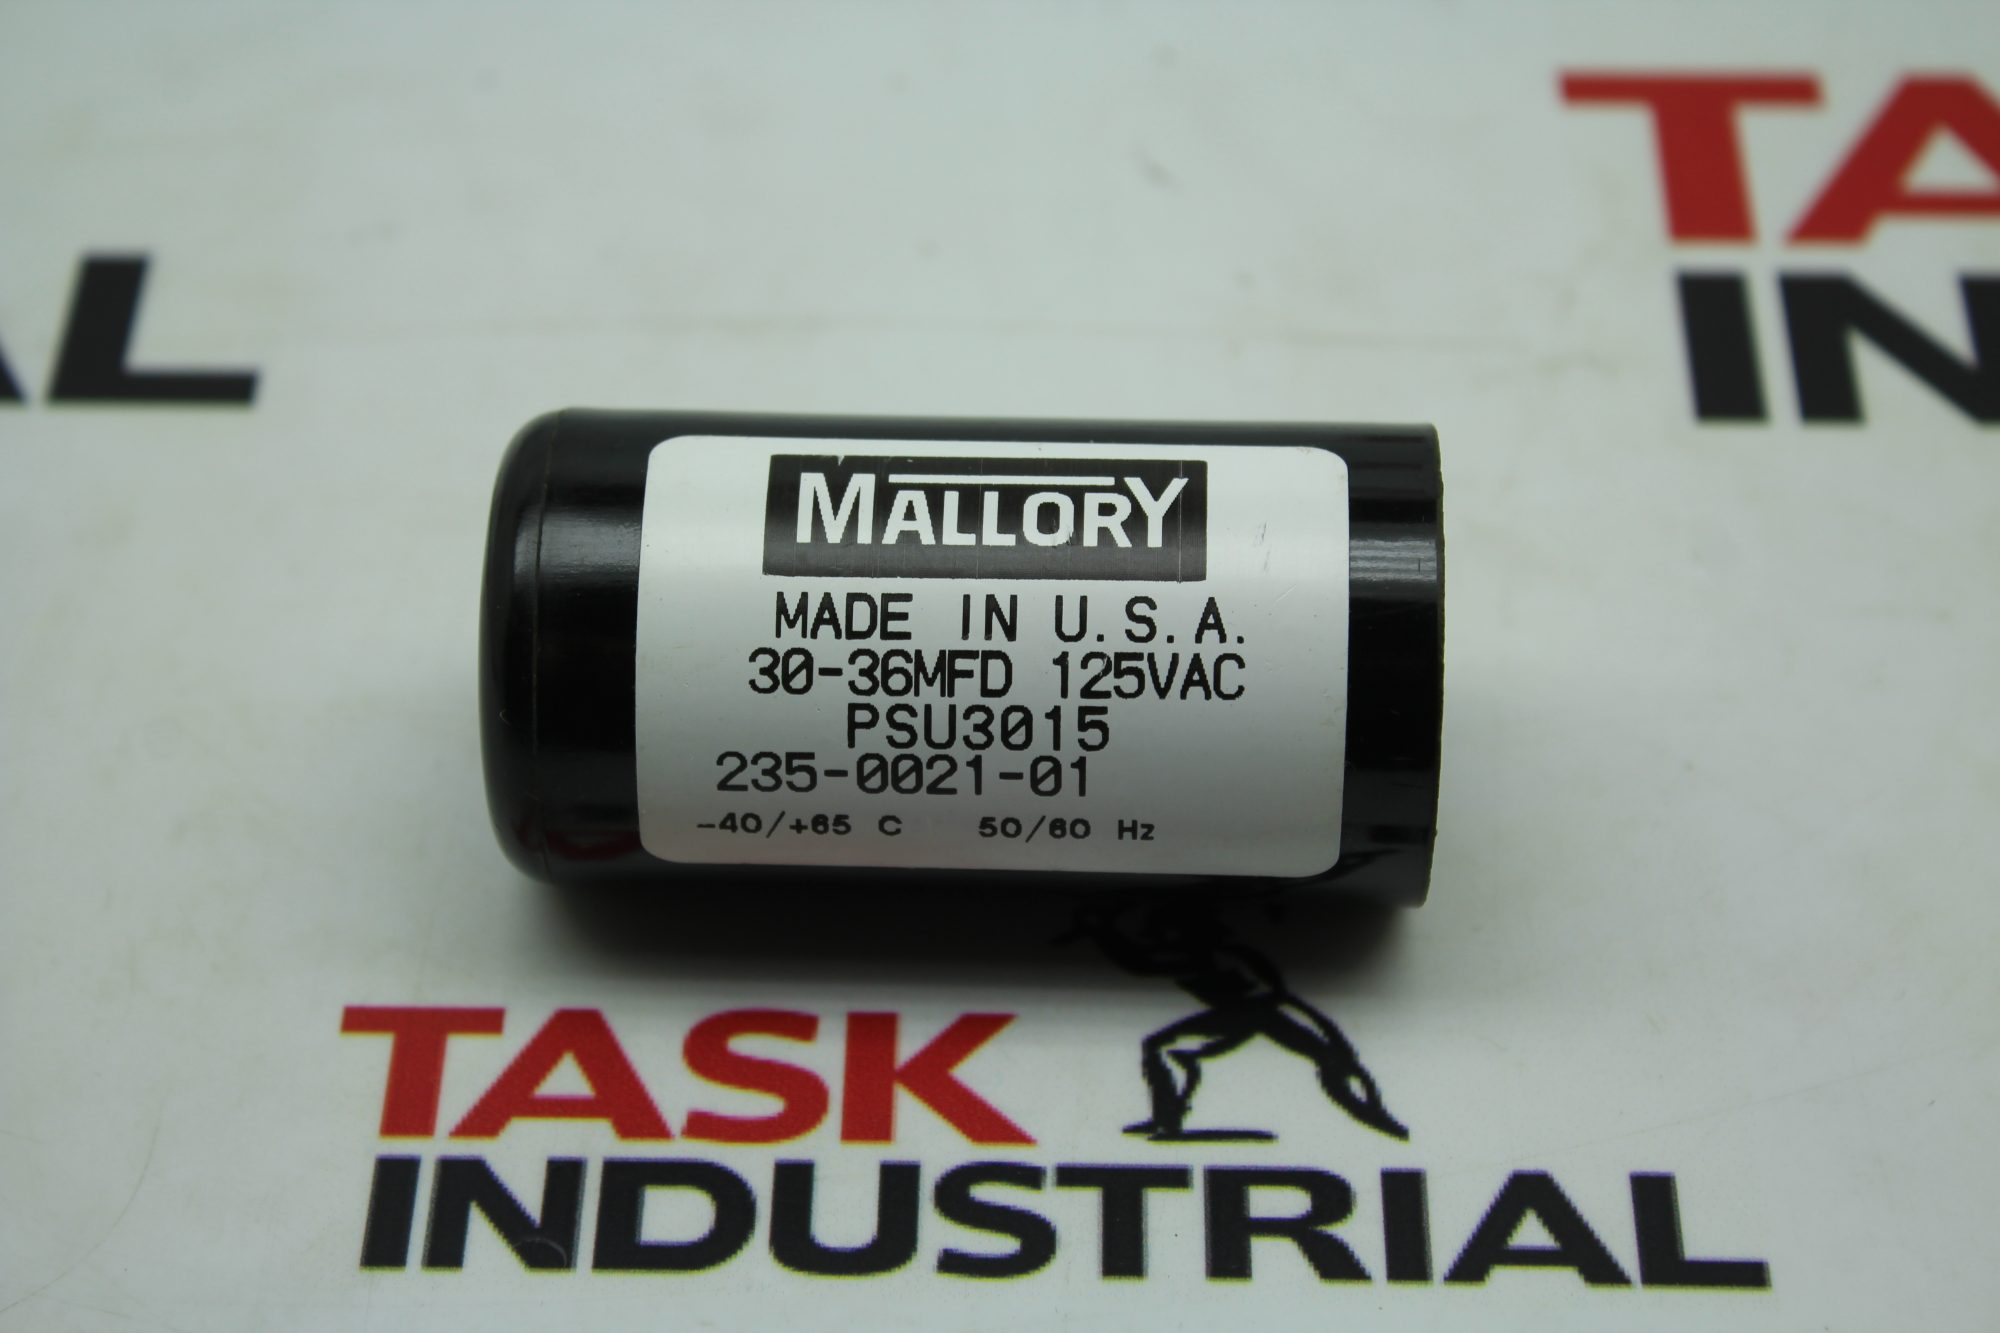 Mallory 30-36MFD Capacitor 235-0021-01